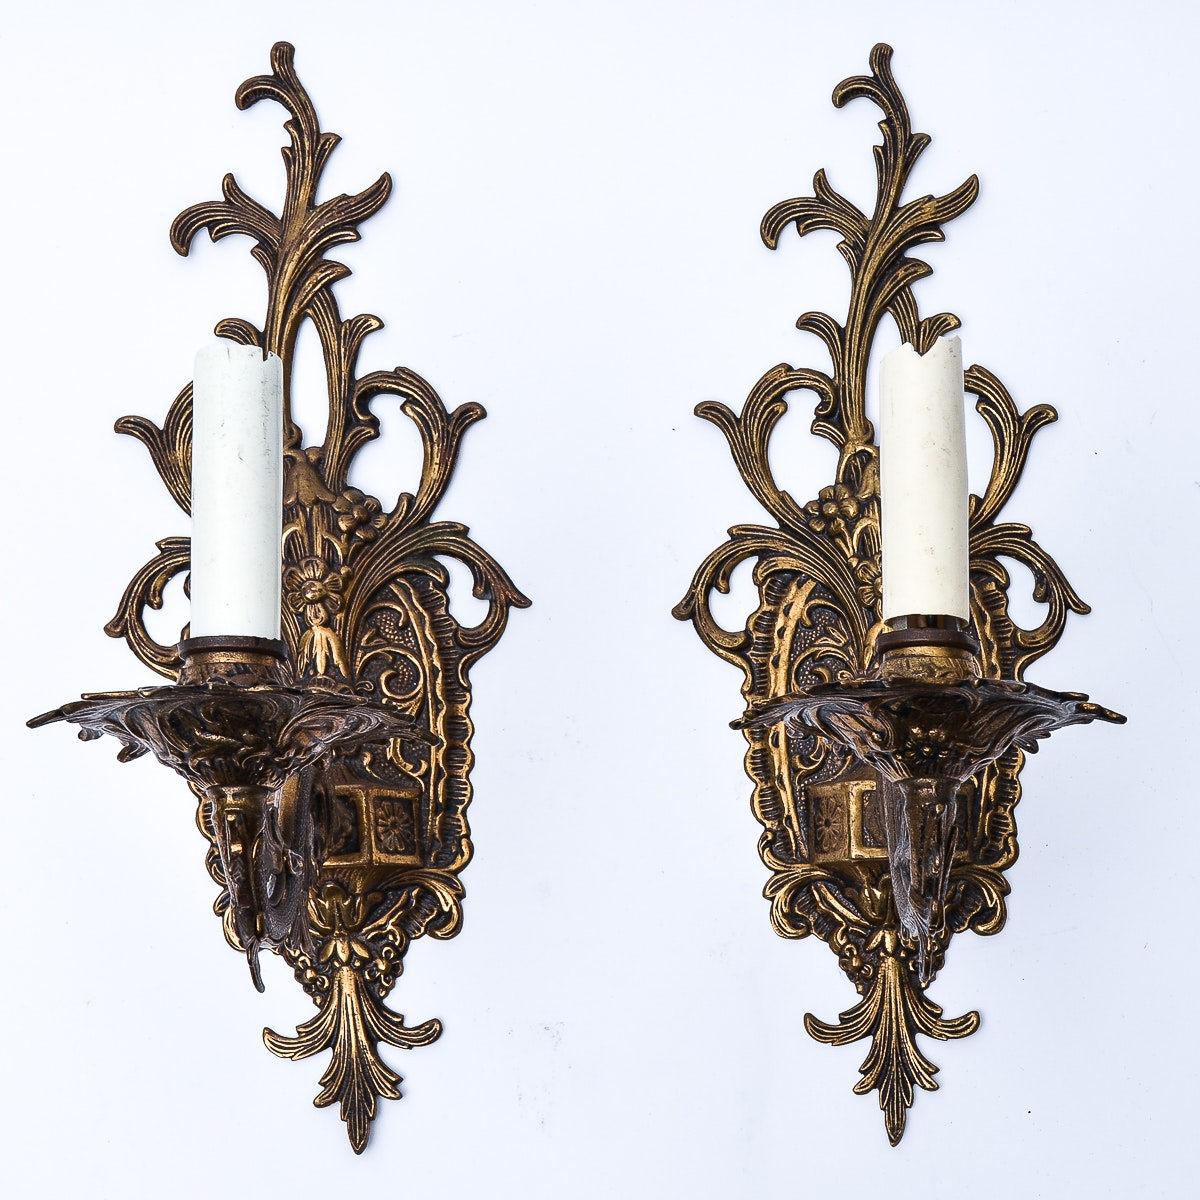 Pair of Vintage Electric Wall Sconces